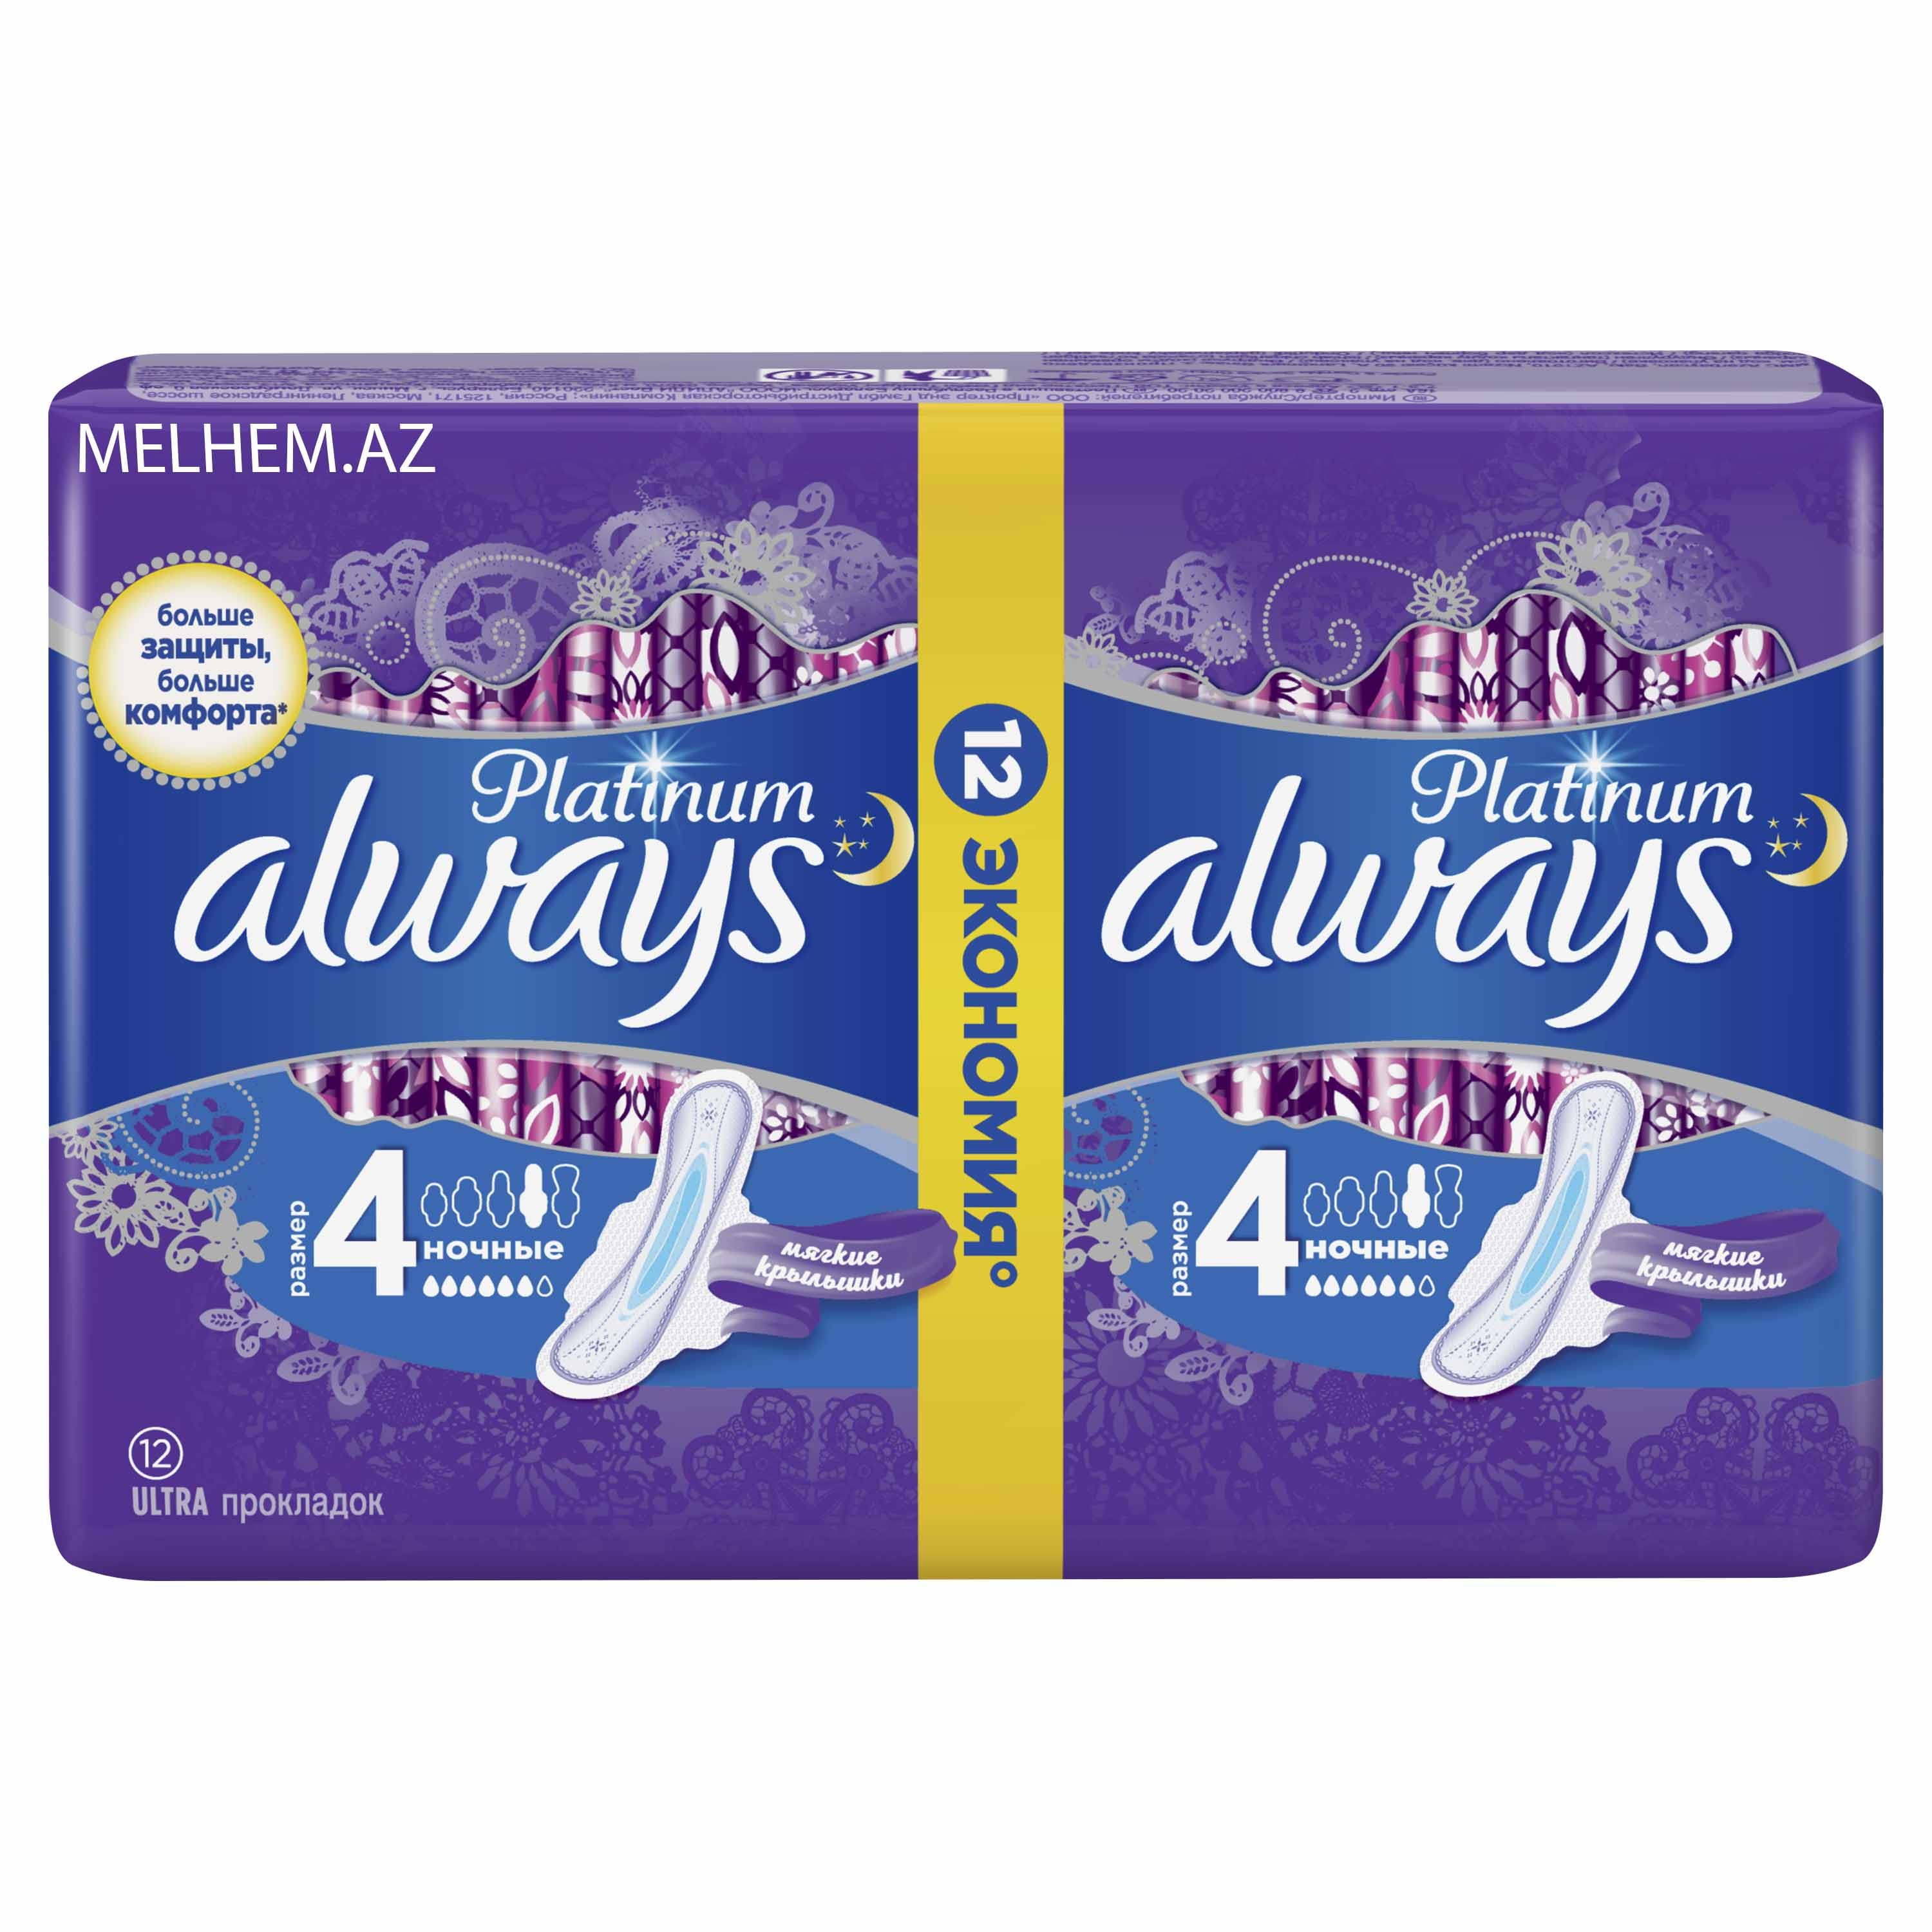 ALWAYS PLATINUM ULTRA N 12